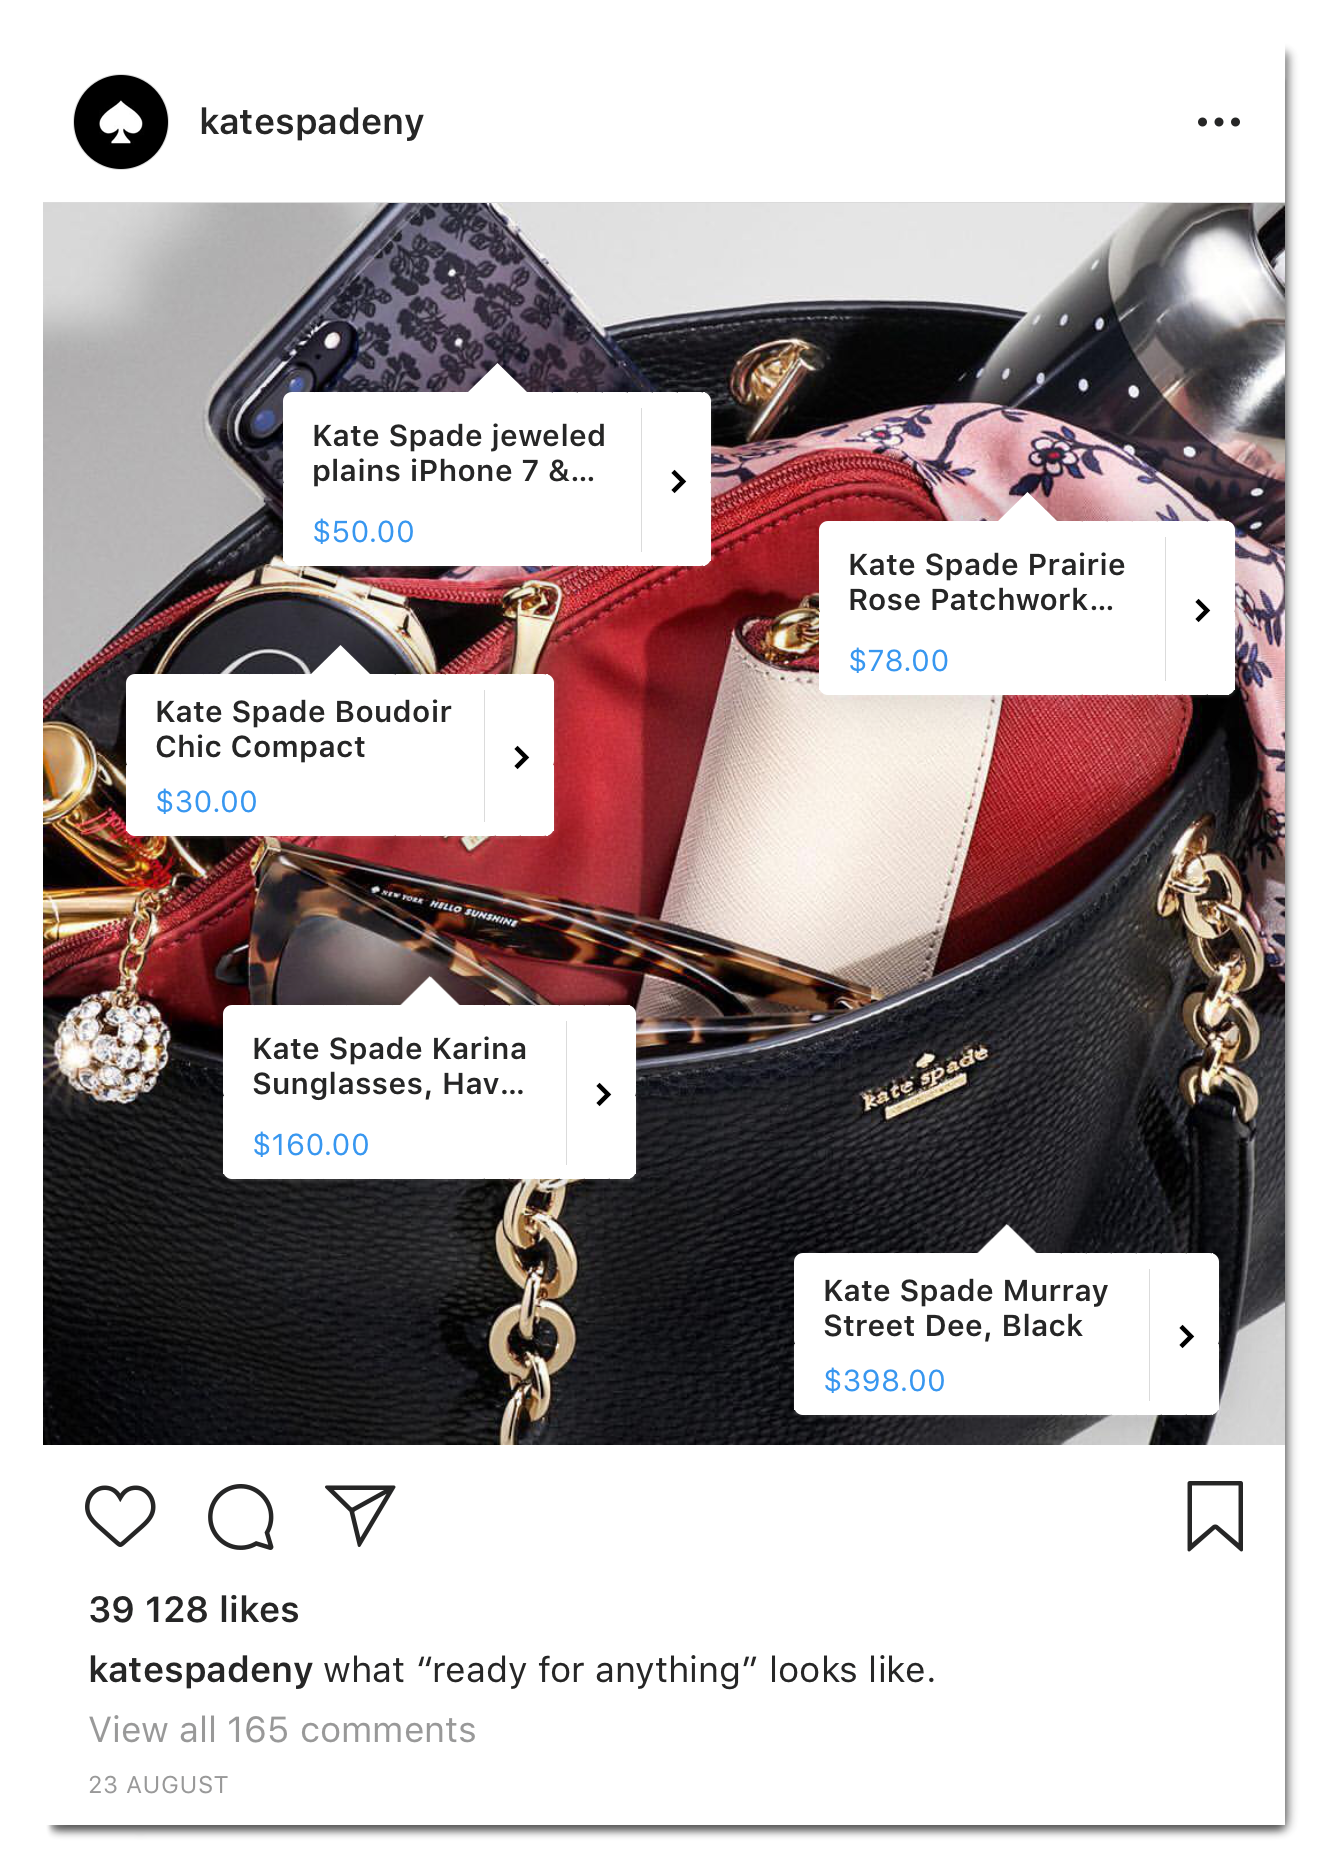 How to Drive More Sales with Instagram | Blog - Printful